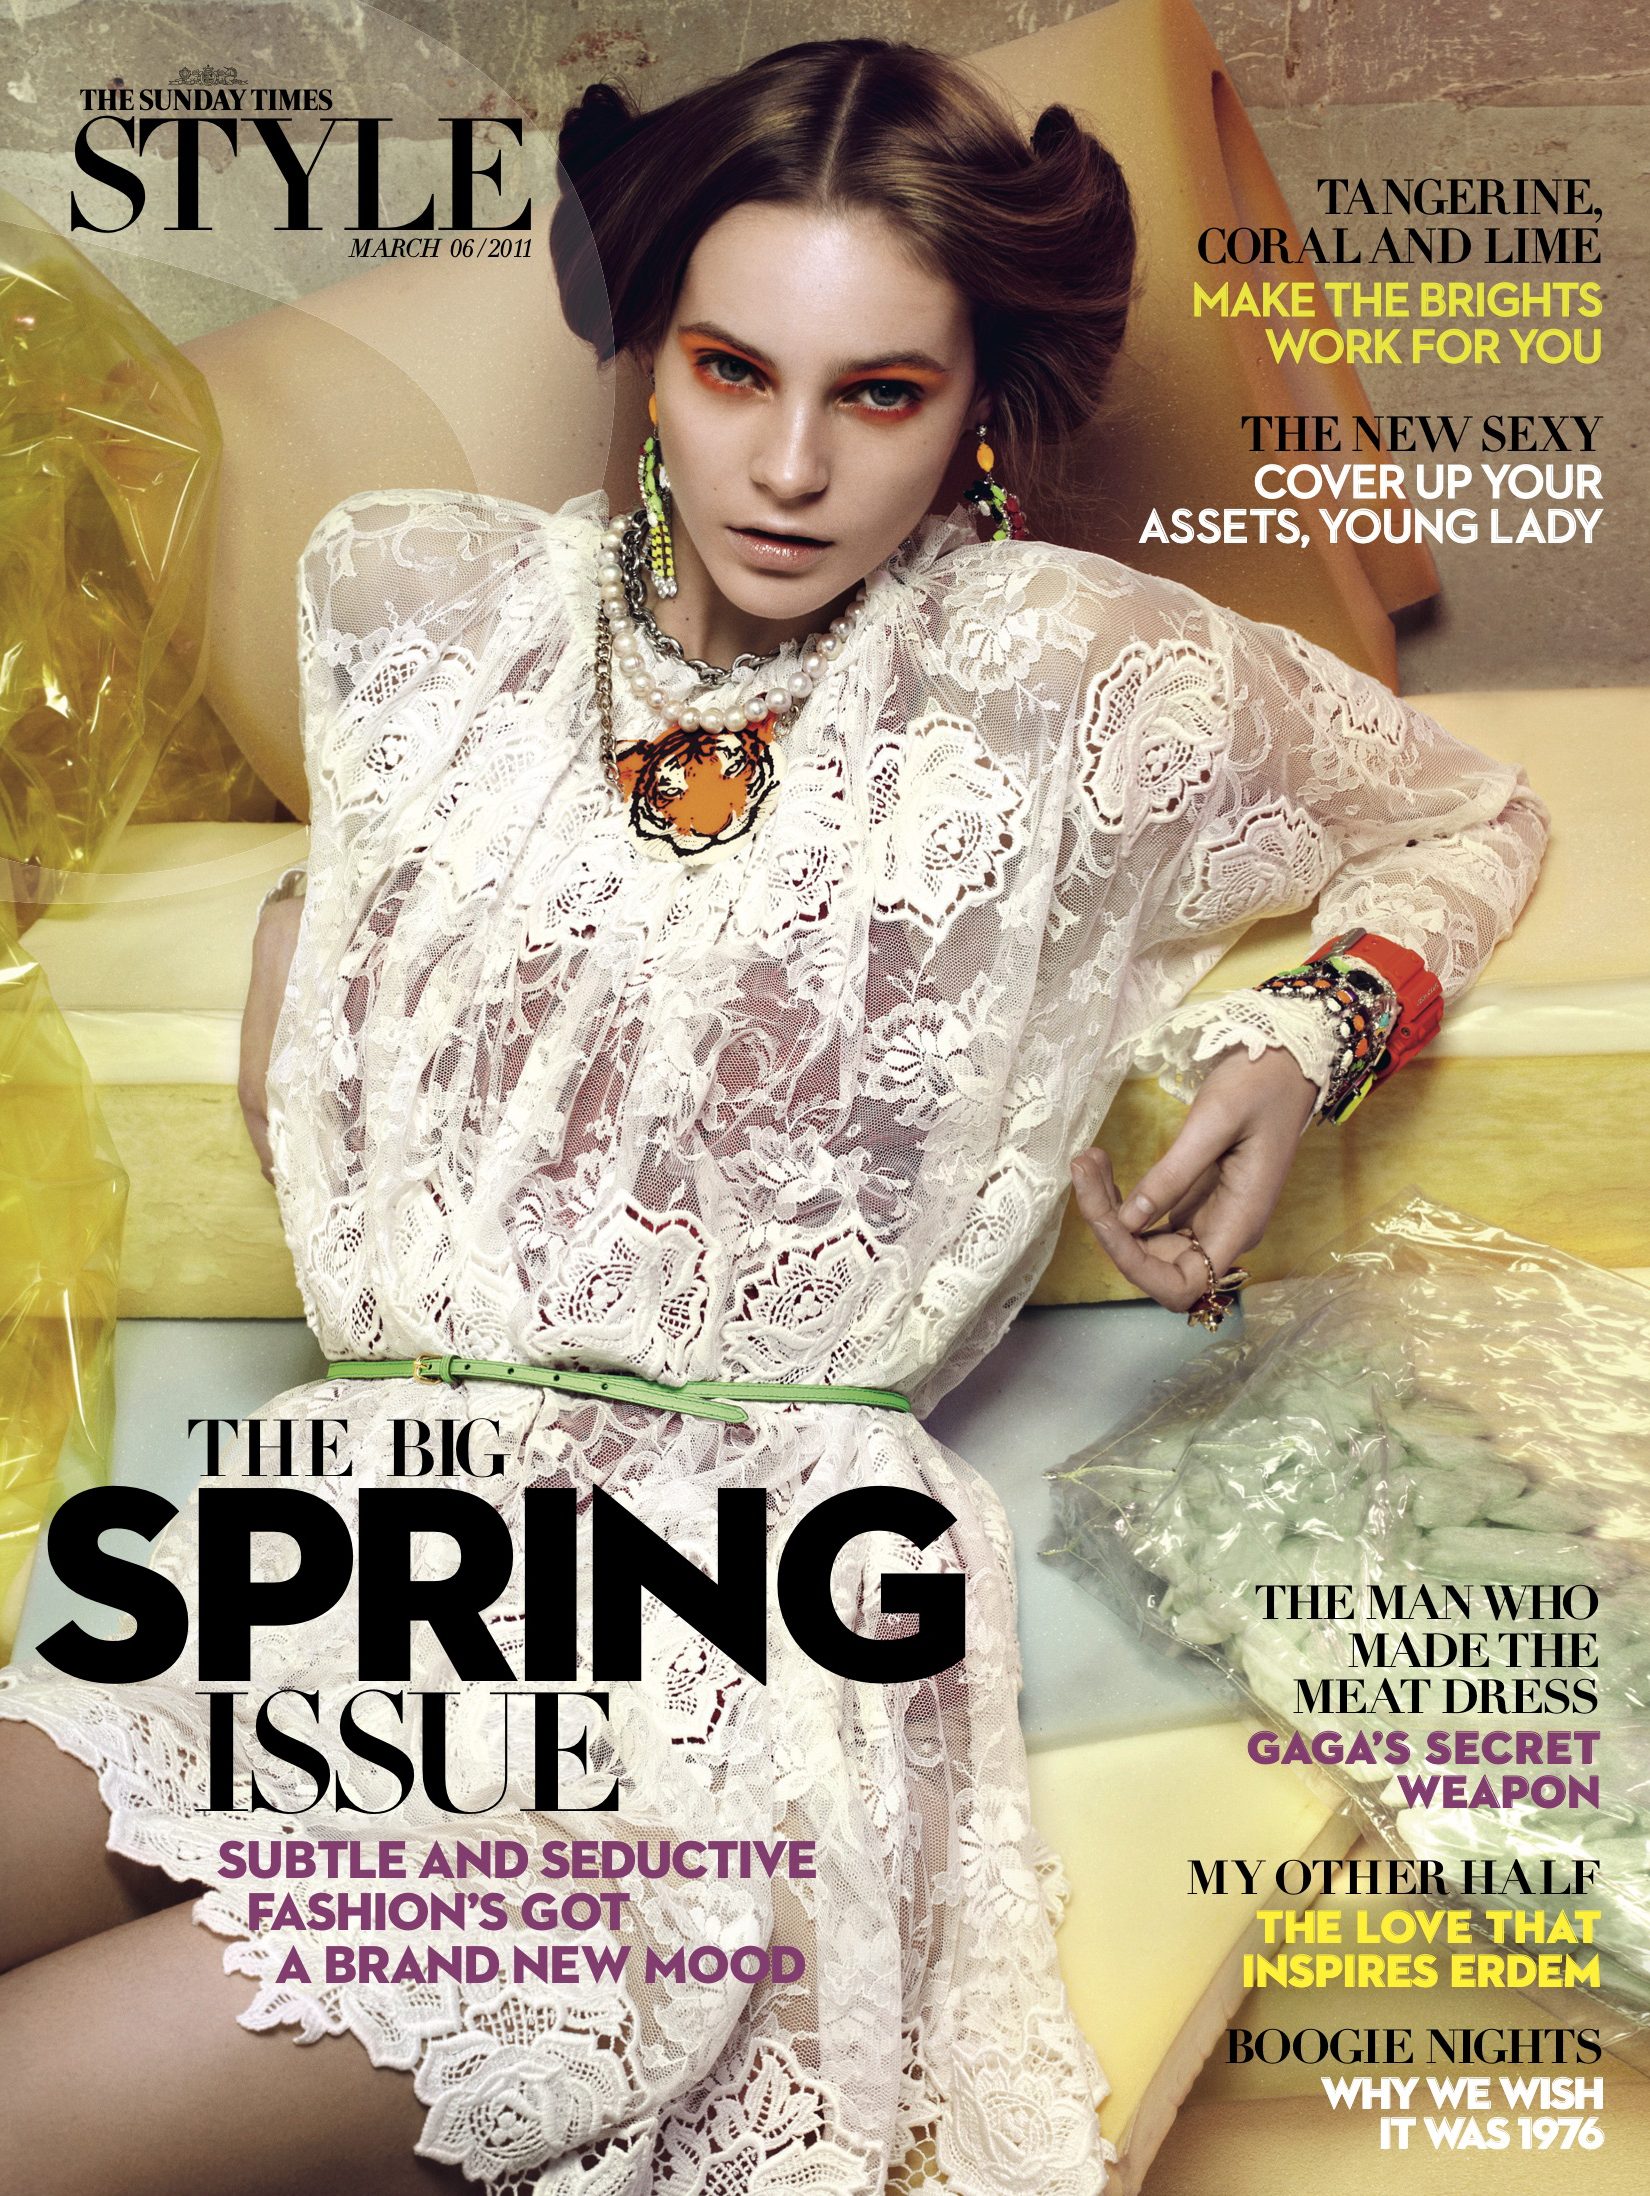 6th March, 2011. Fashion special. Cover shot by Katja Mayer.